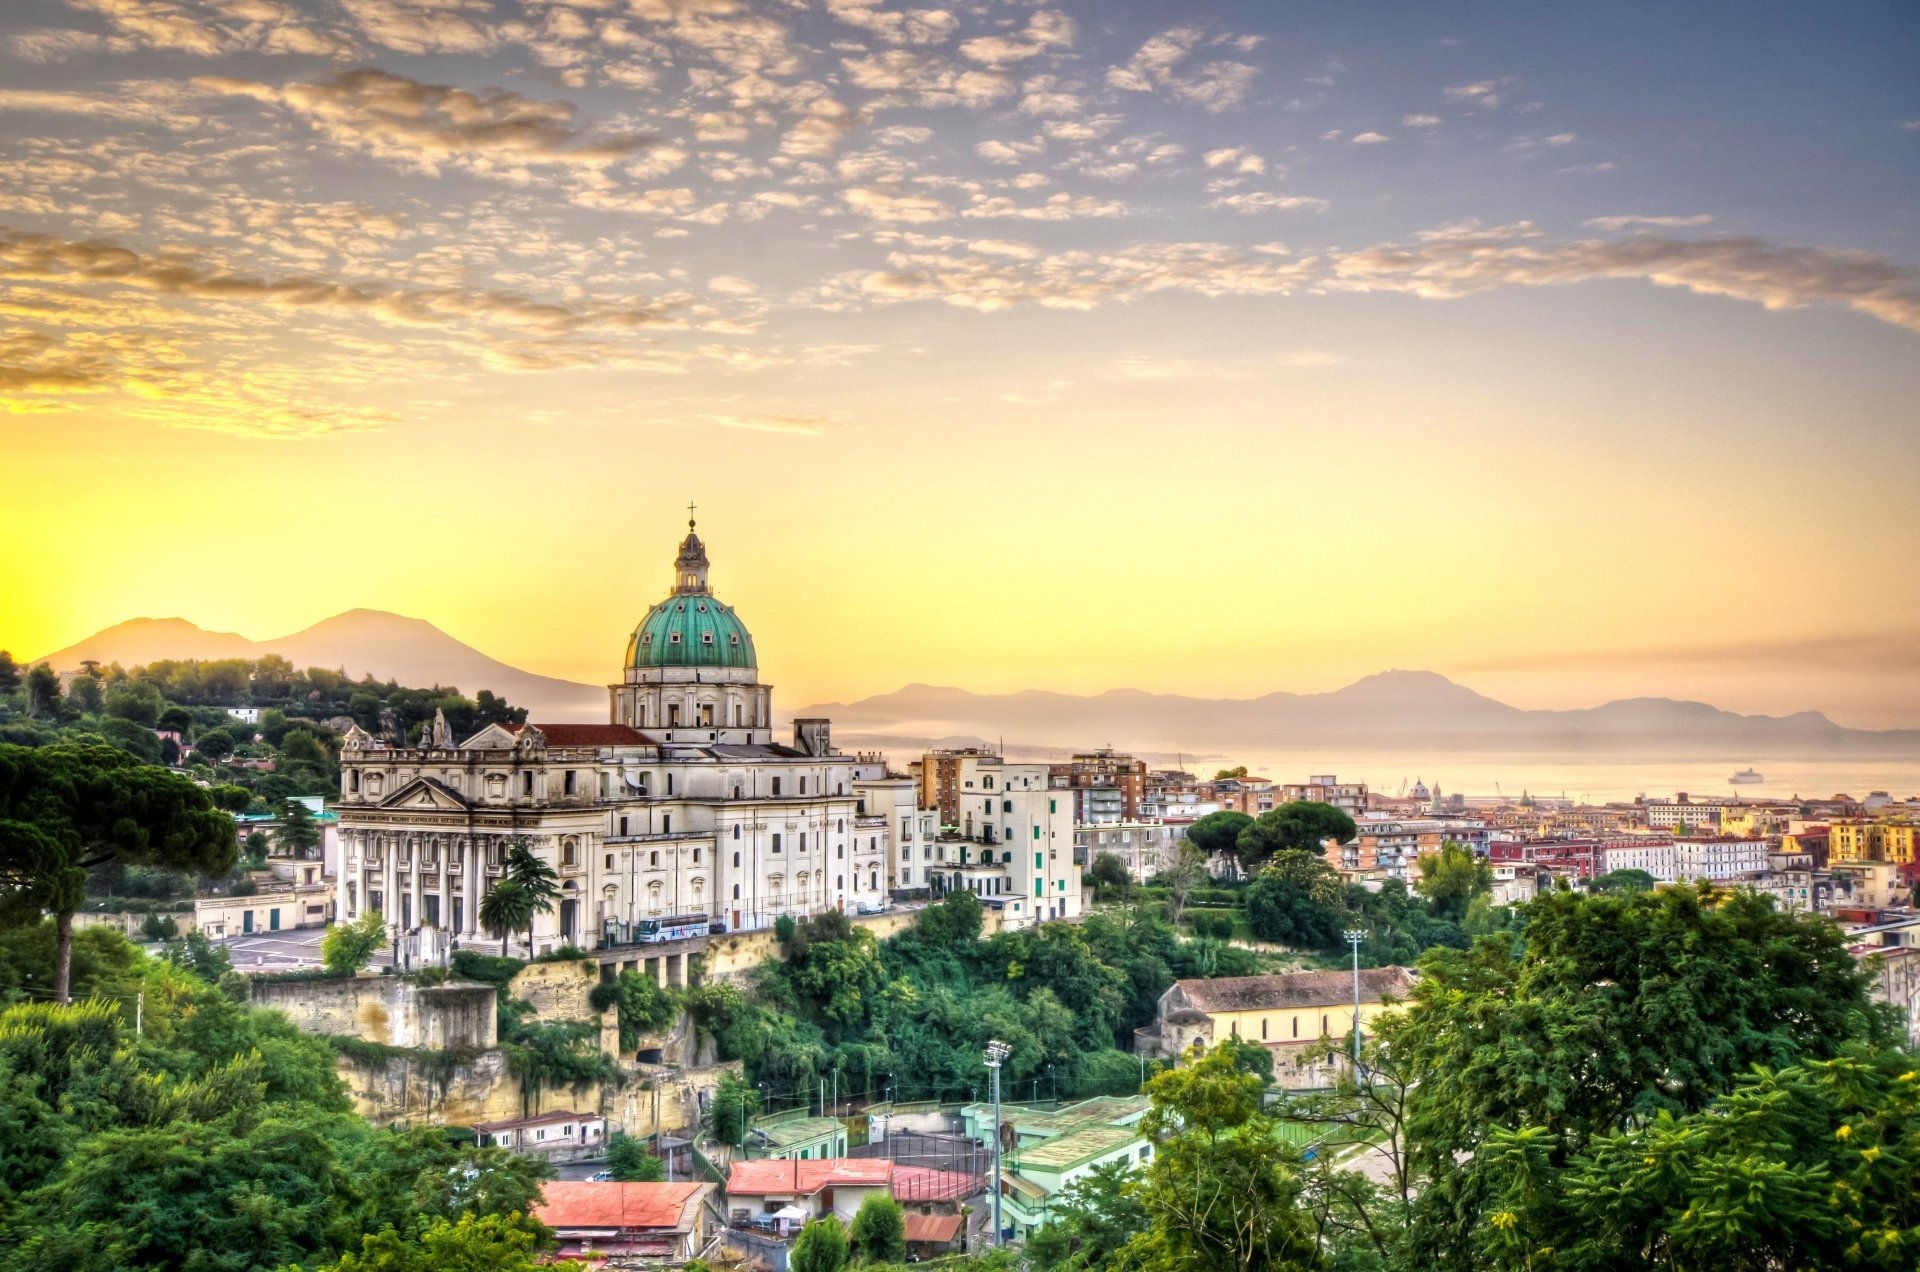 Naples italy 4k ultra hd wallpaper background image - Naples italy wallpaper ...